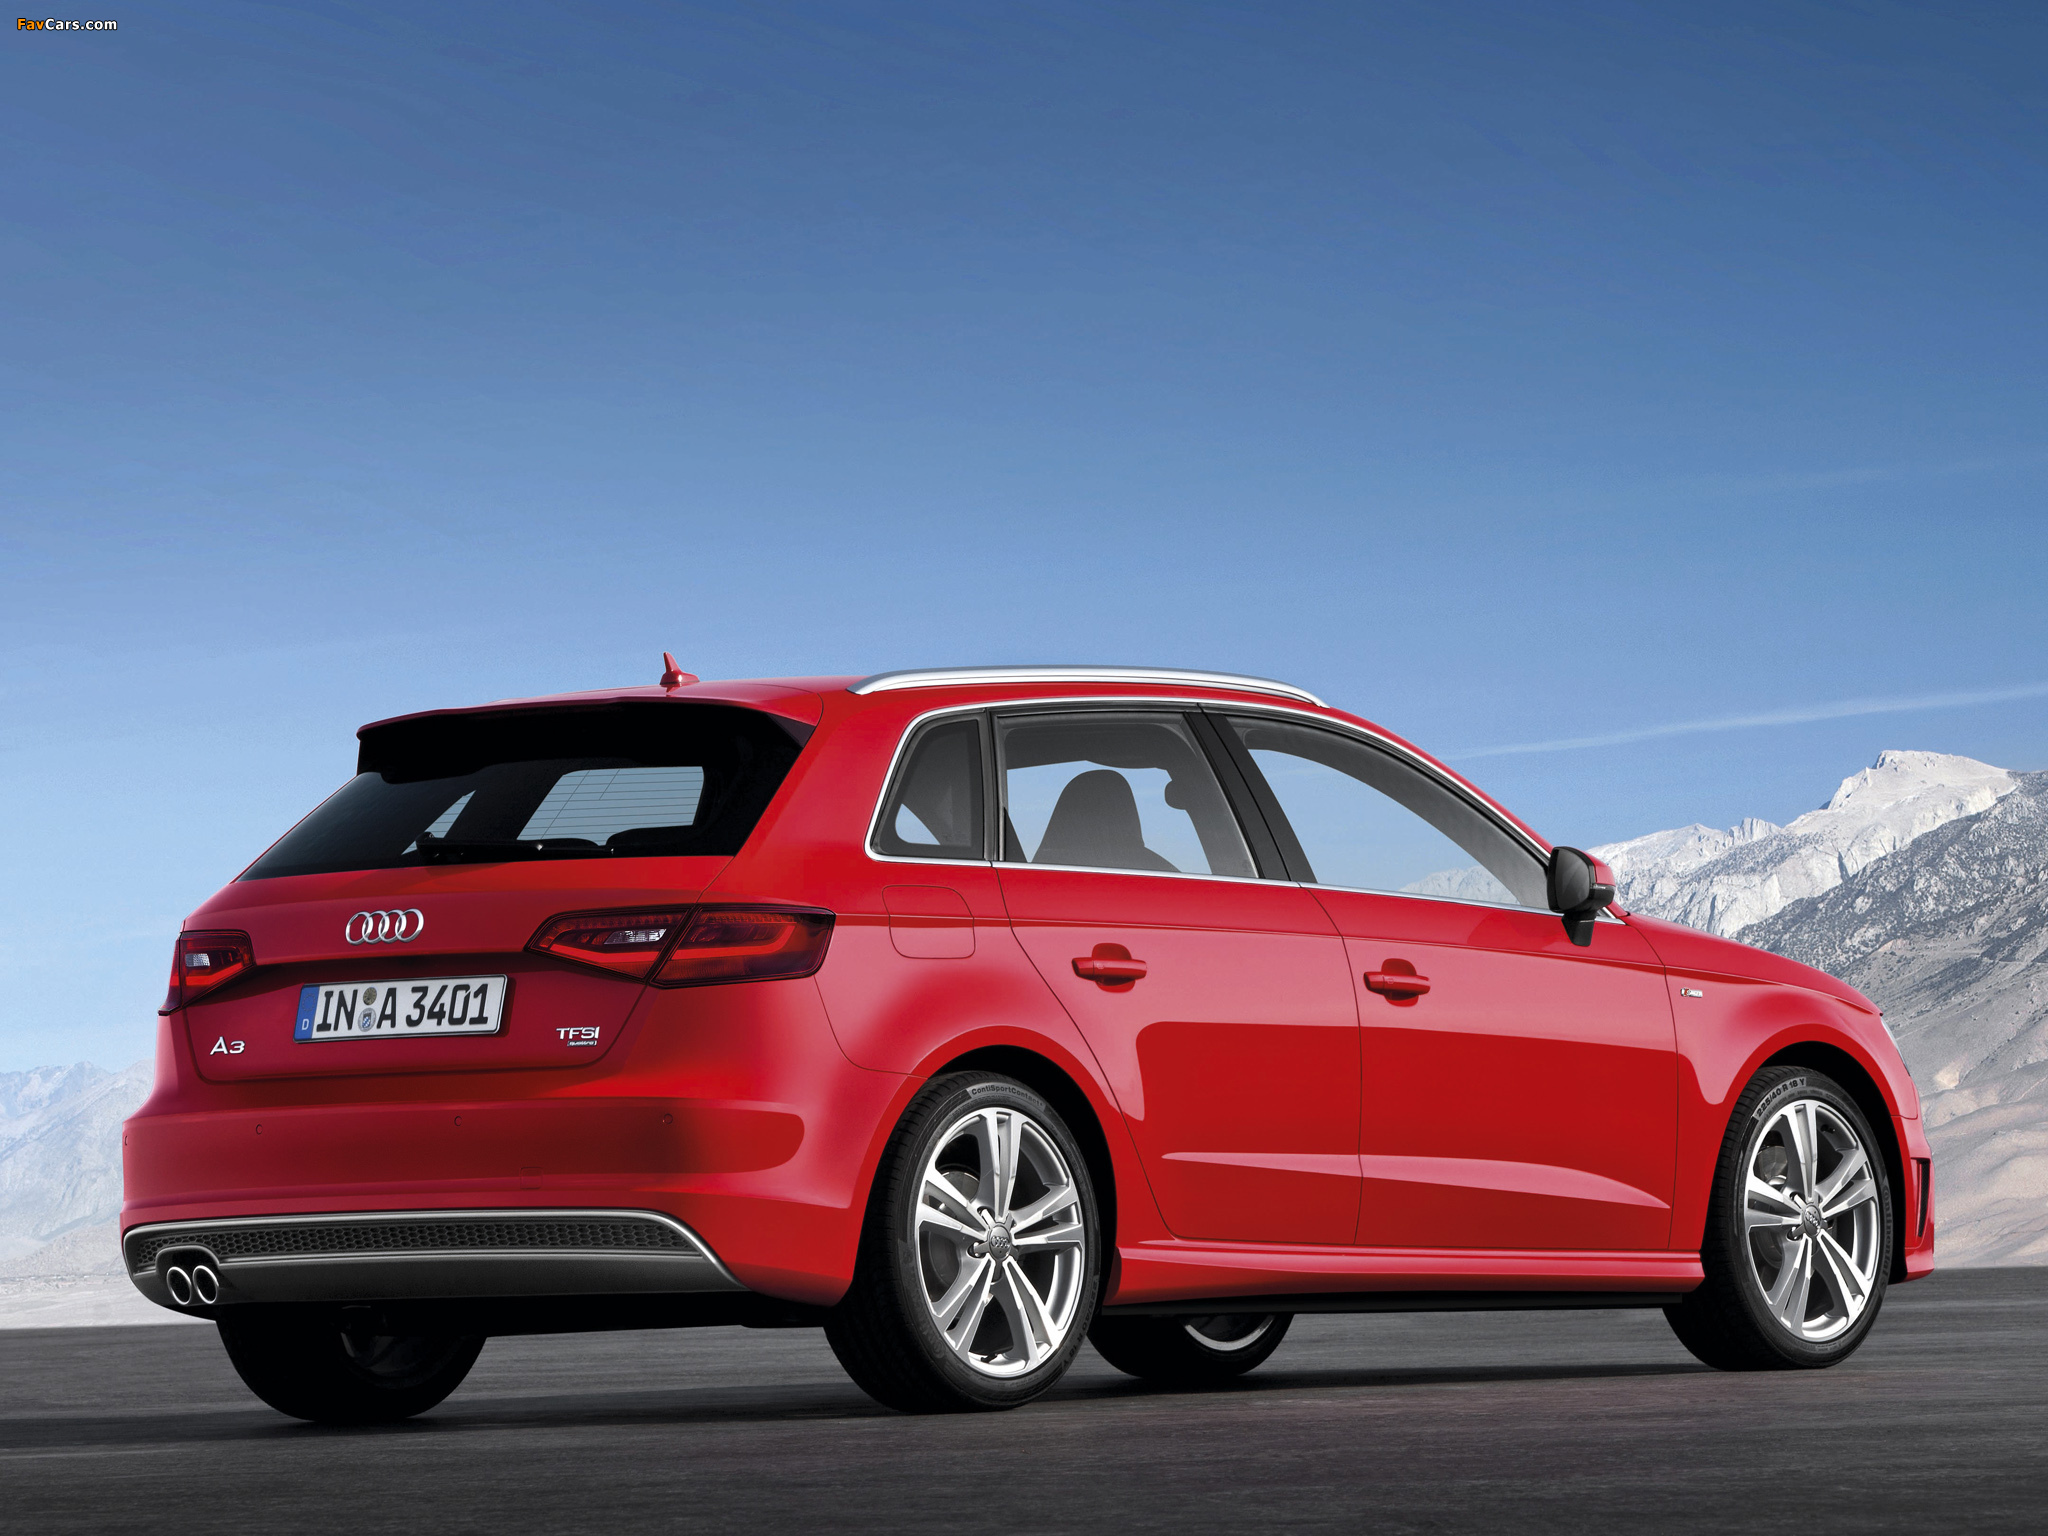 audi a3 sportback 2 0t s line quattro 8v 2012 photos. Black Bedroom Furniture Sets. Home Design Ideas